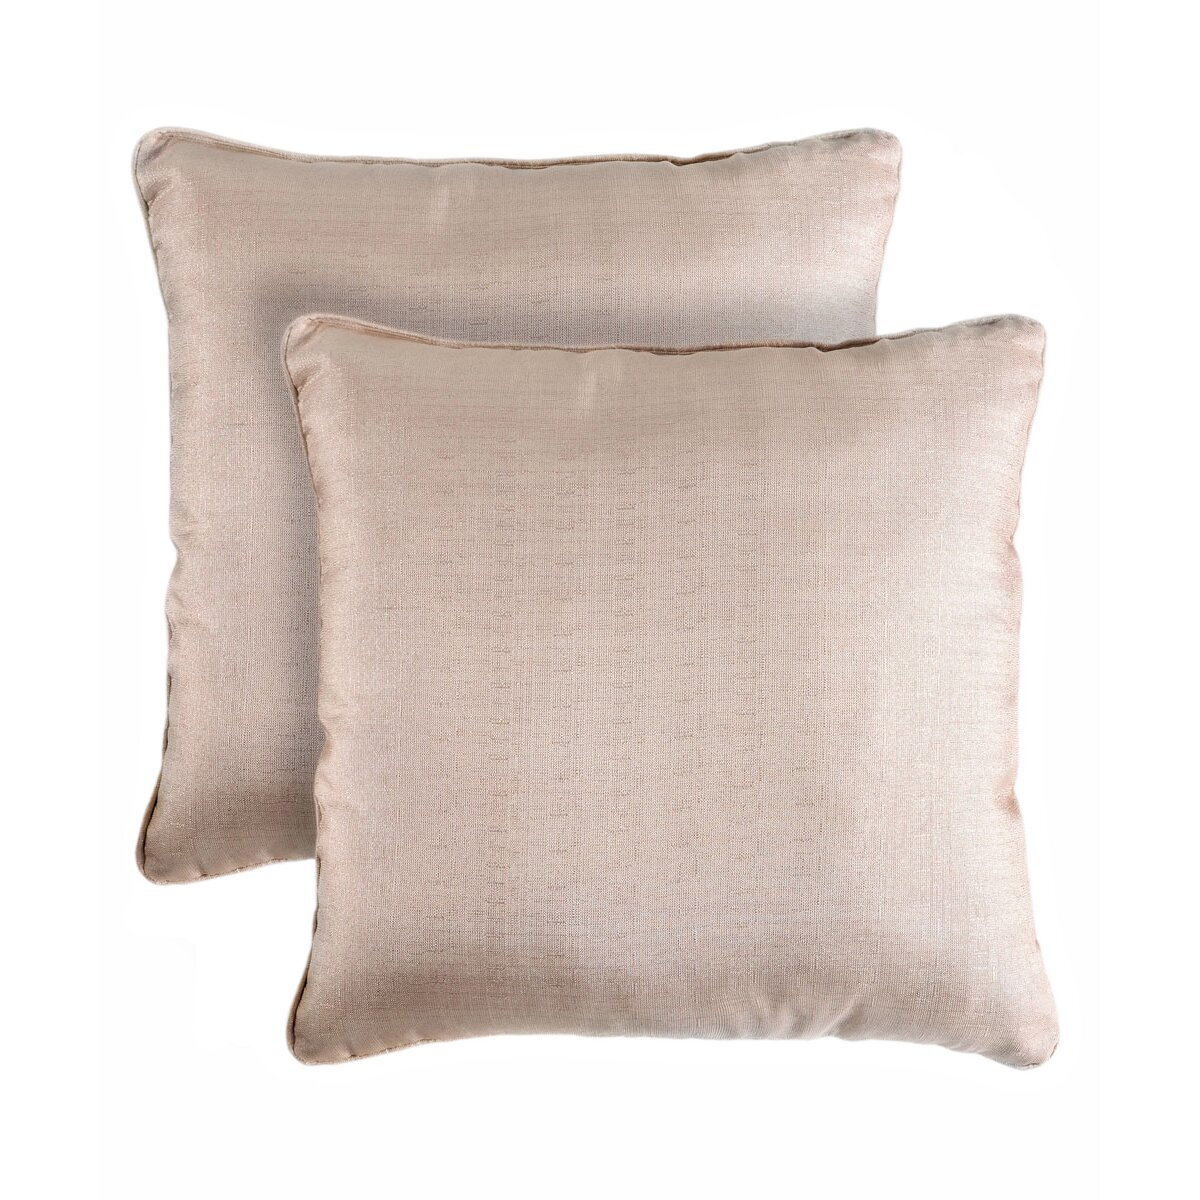 Decorative Pillow Wayfair : Pegasus Home Fashions Bling Shimmering Throw Pillow & Reviews Wayfair